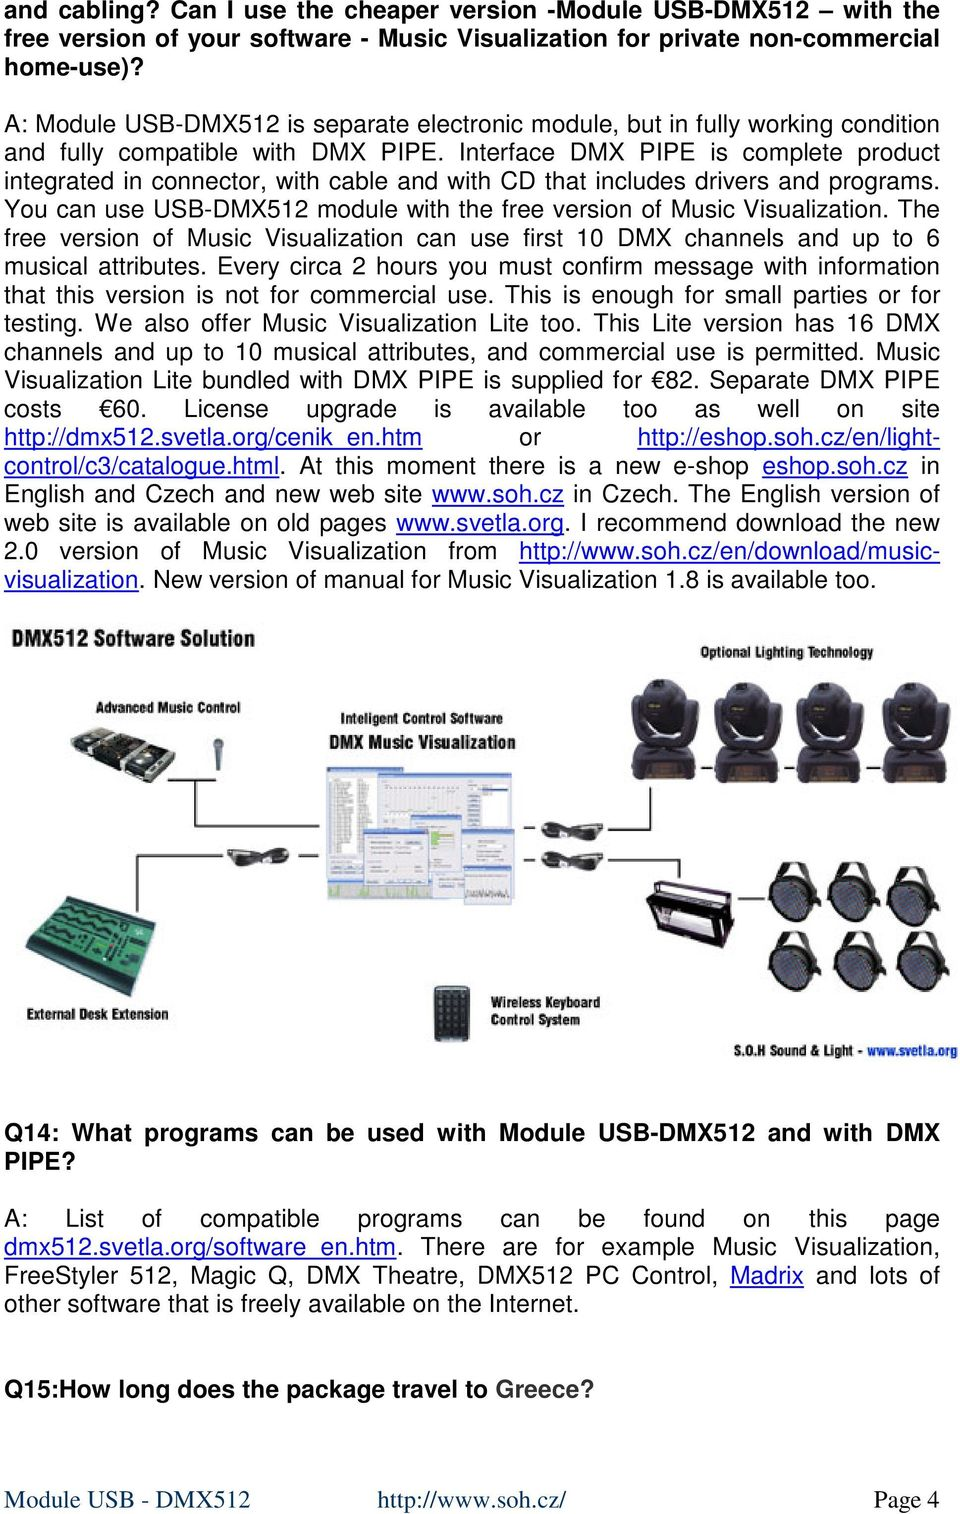 Module USB-DMX512 and DMX PIPE - PDF